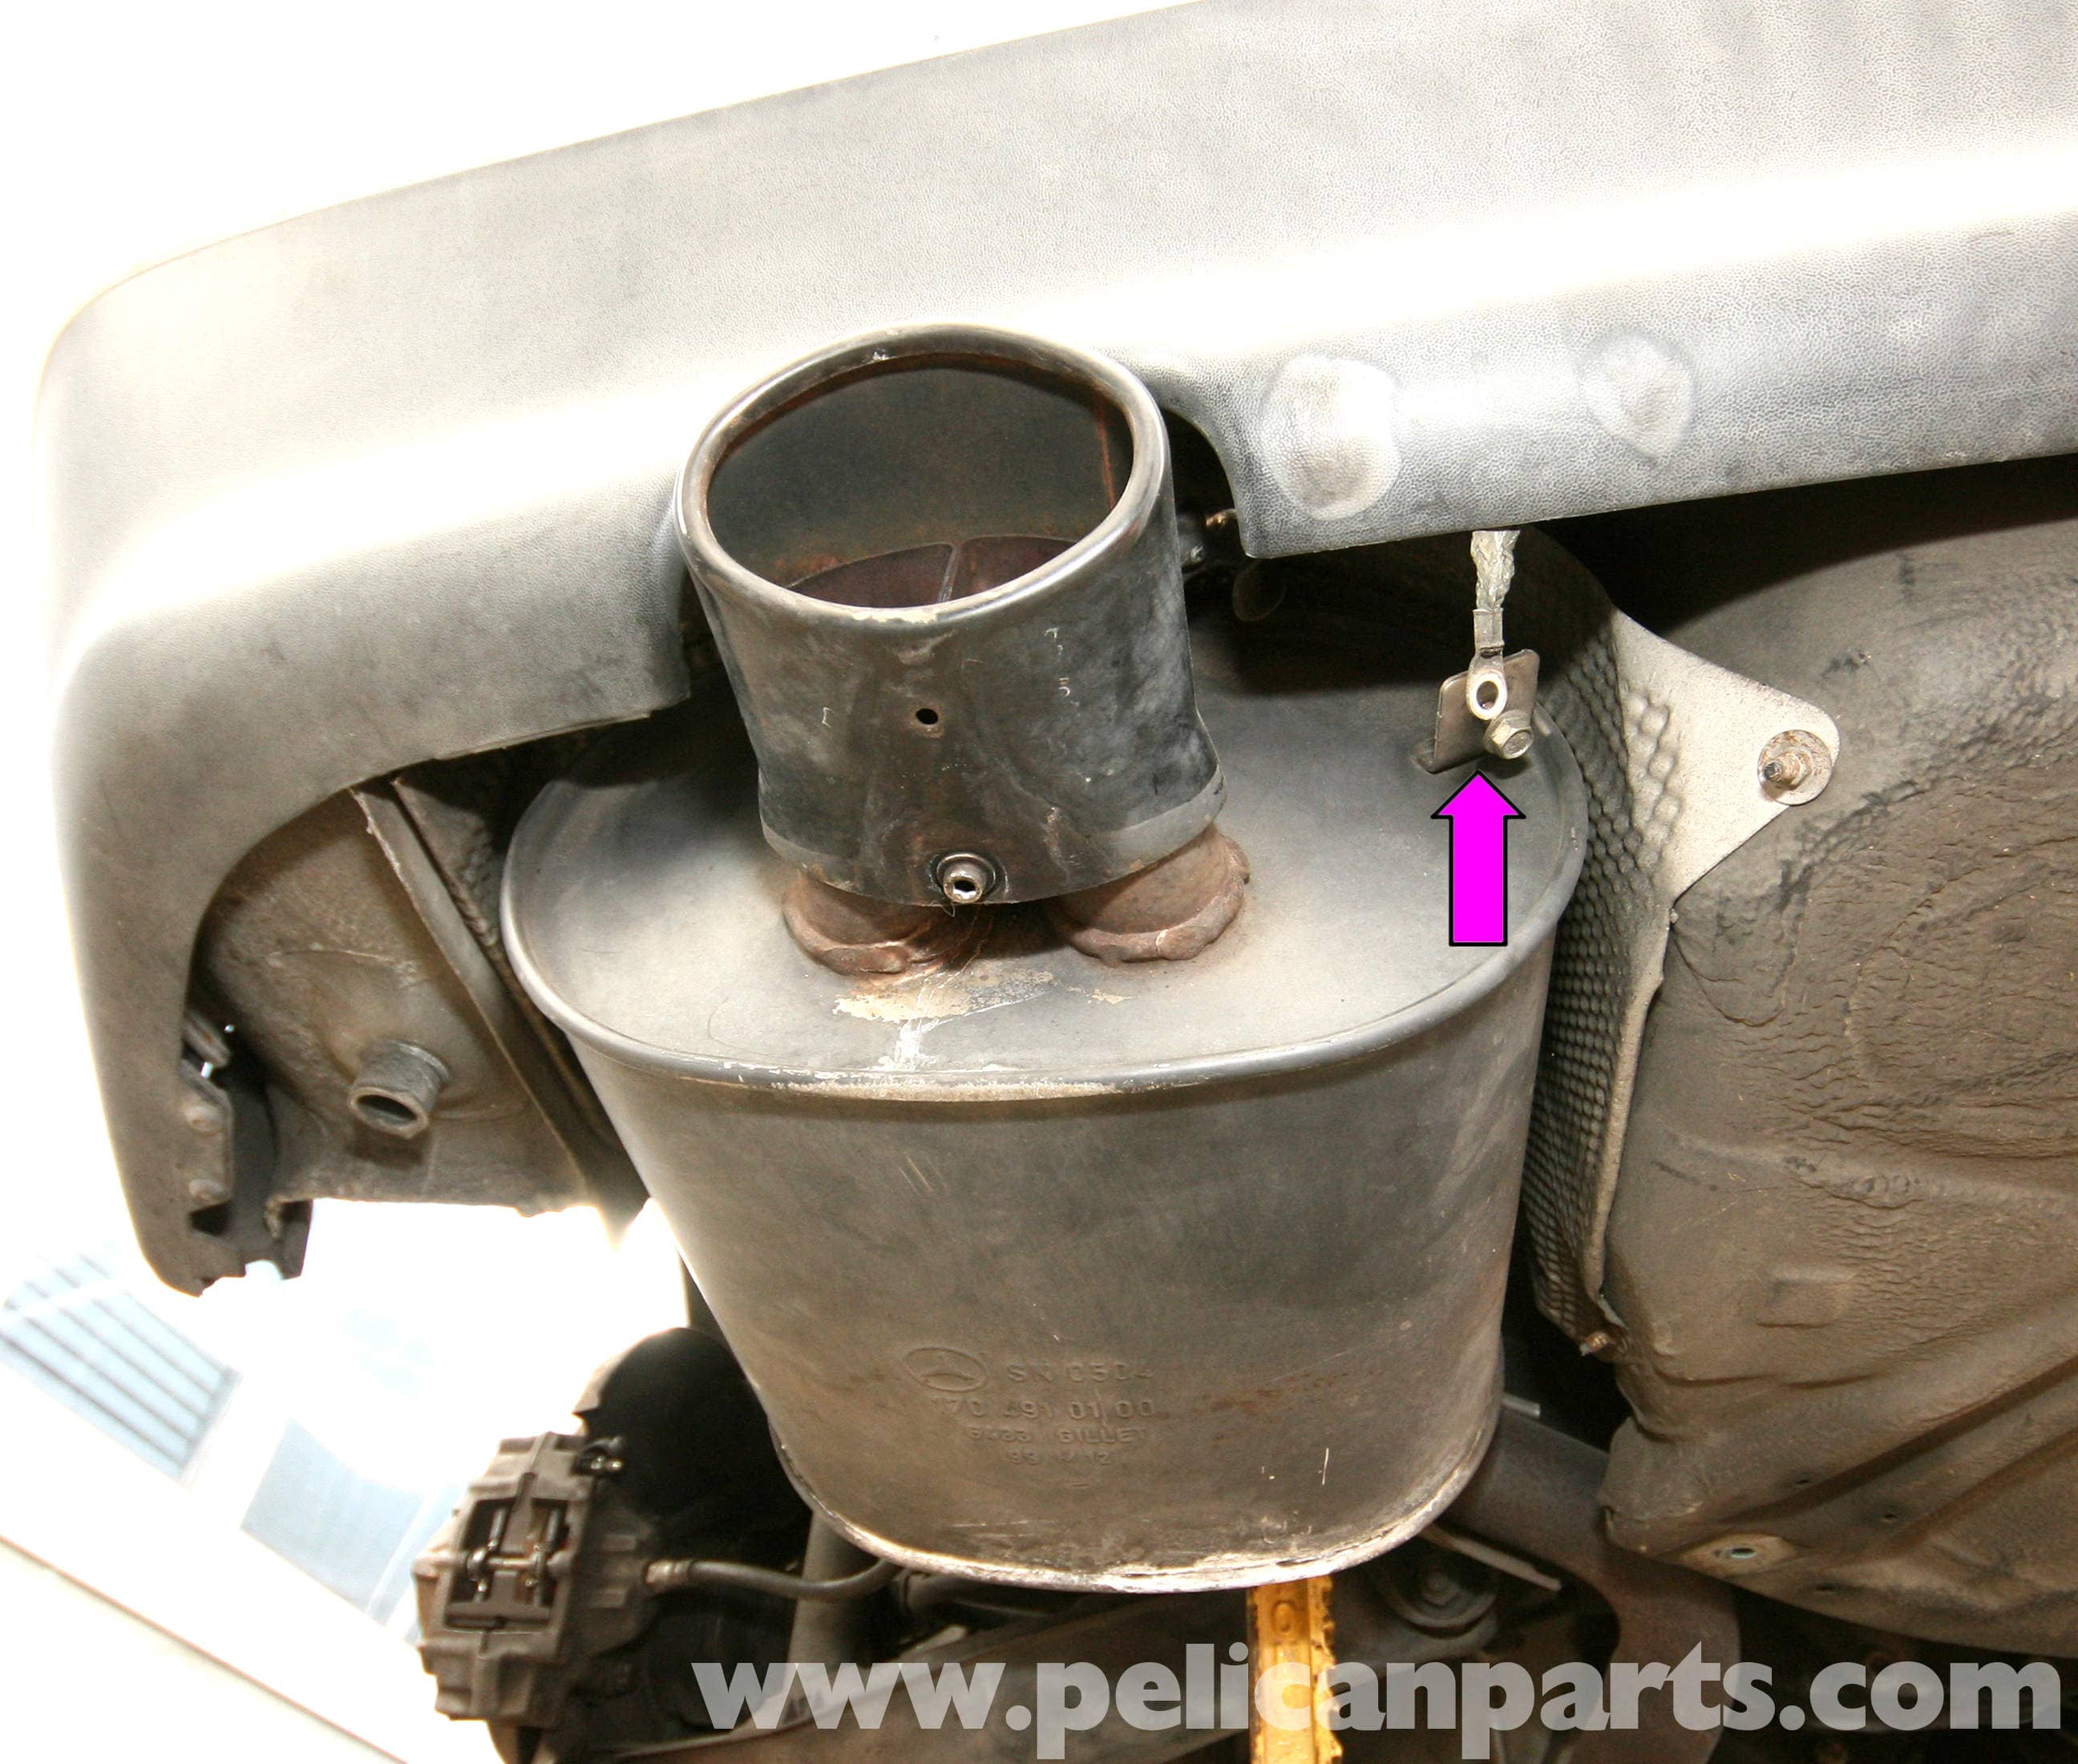 Mercedes-Benz SLK 230 Muffler and Tailpipe Replacement